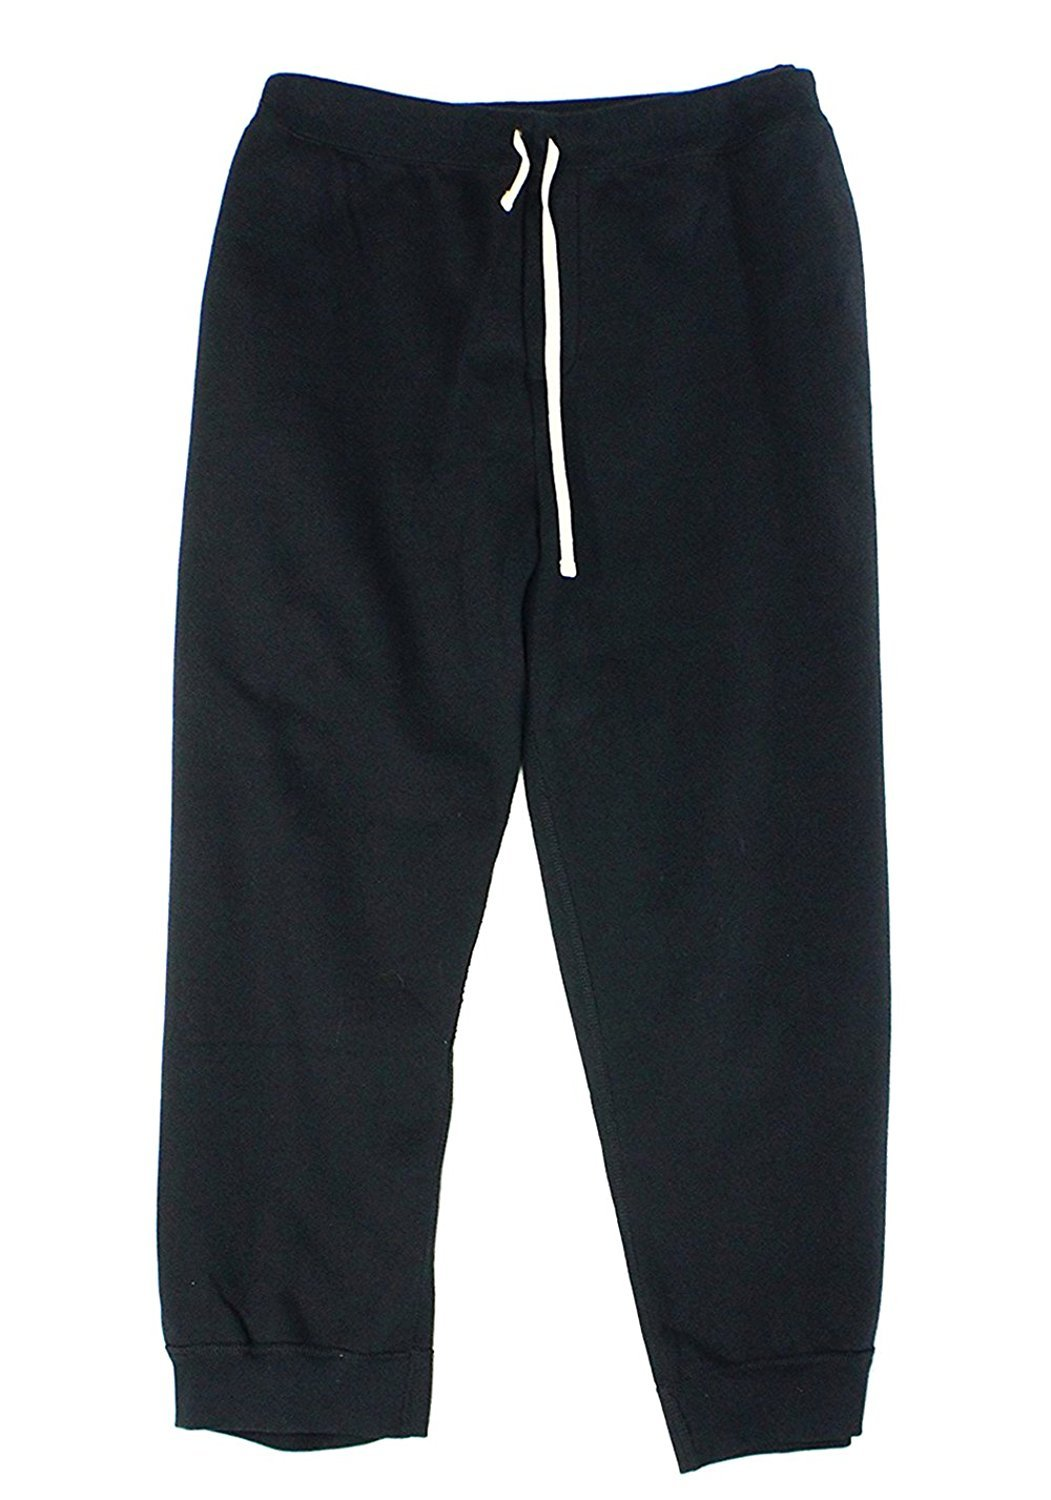 Polo Ralph Lauren Men's Big & Tall Fleece Sweatpants Pants (XLT, Black)